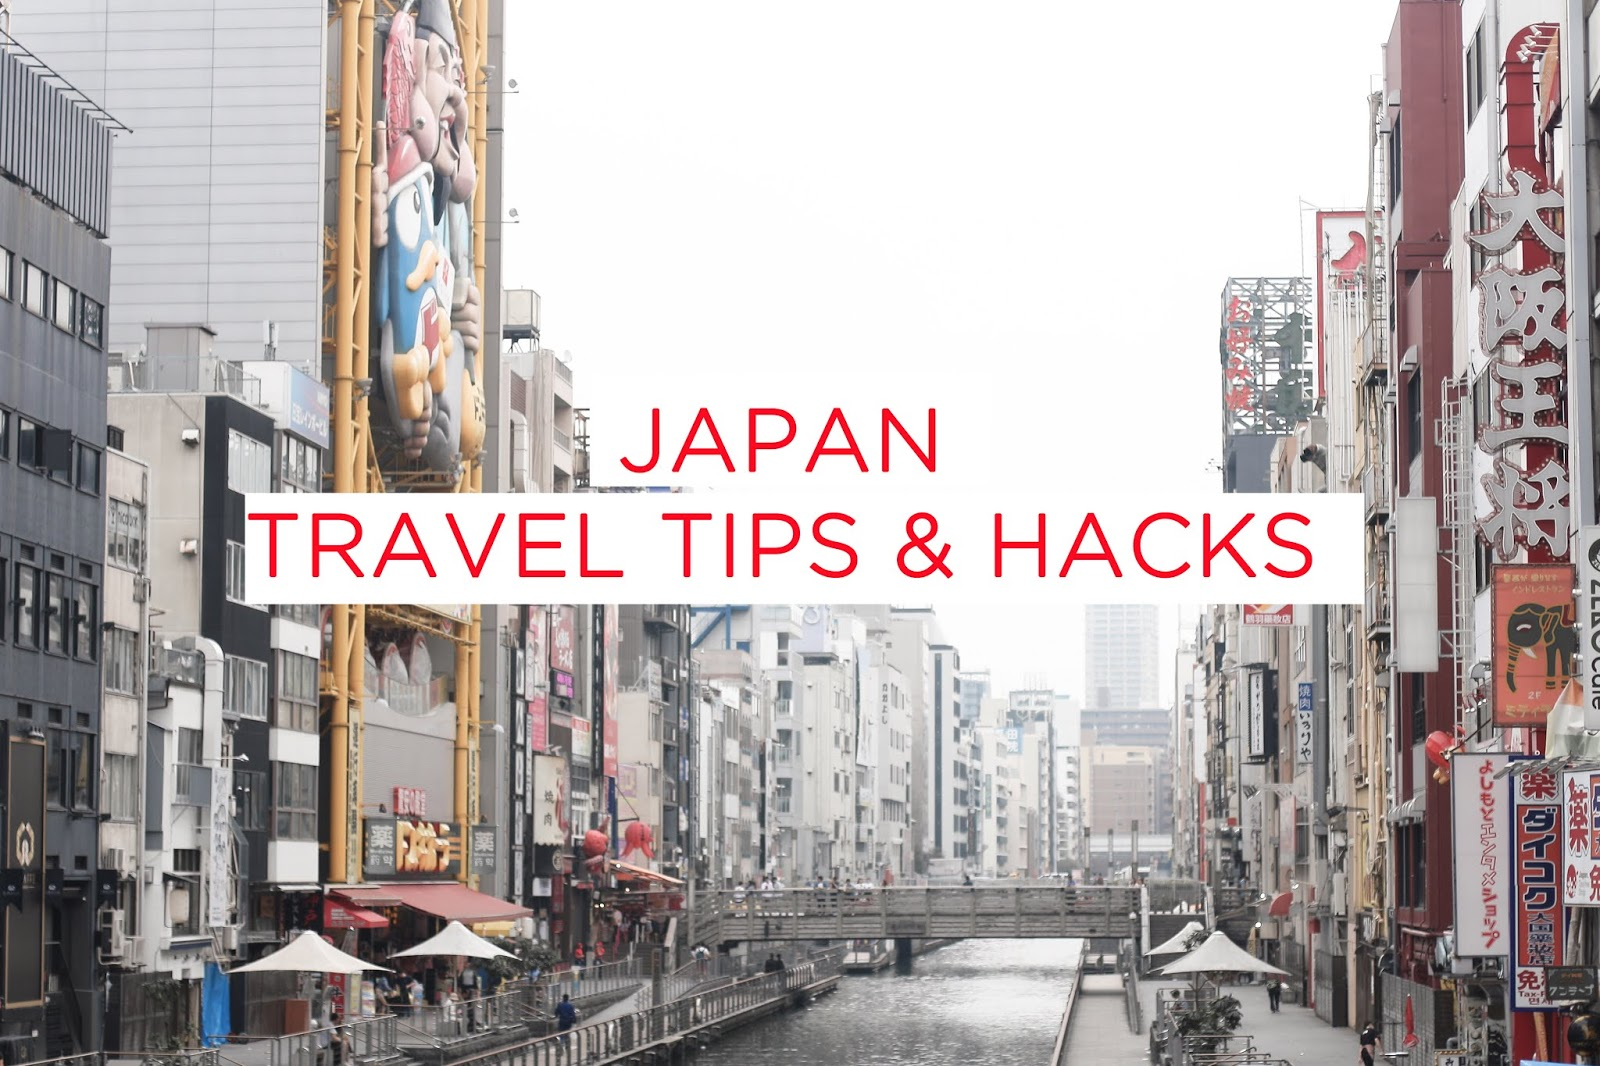 japan travel guide | 13 hacks and tips you need to know - style